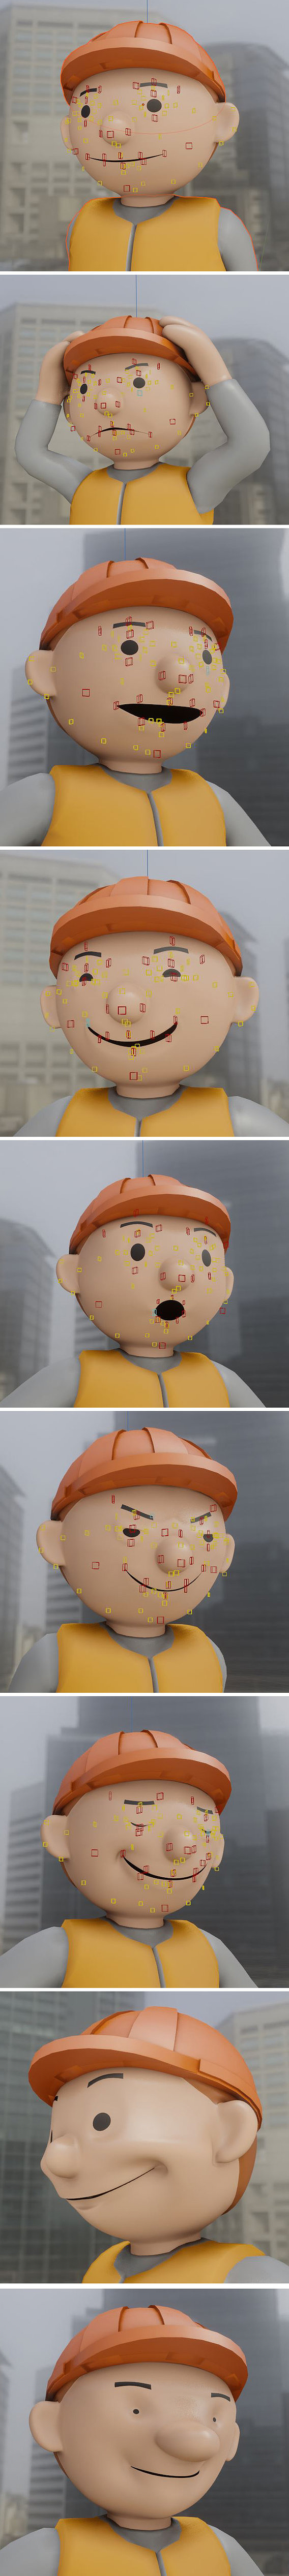 Cartoon Construction Worker Face Rig Tests (Rigify) Blender-2.90.1